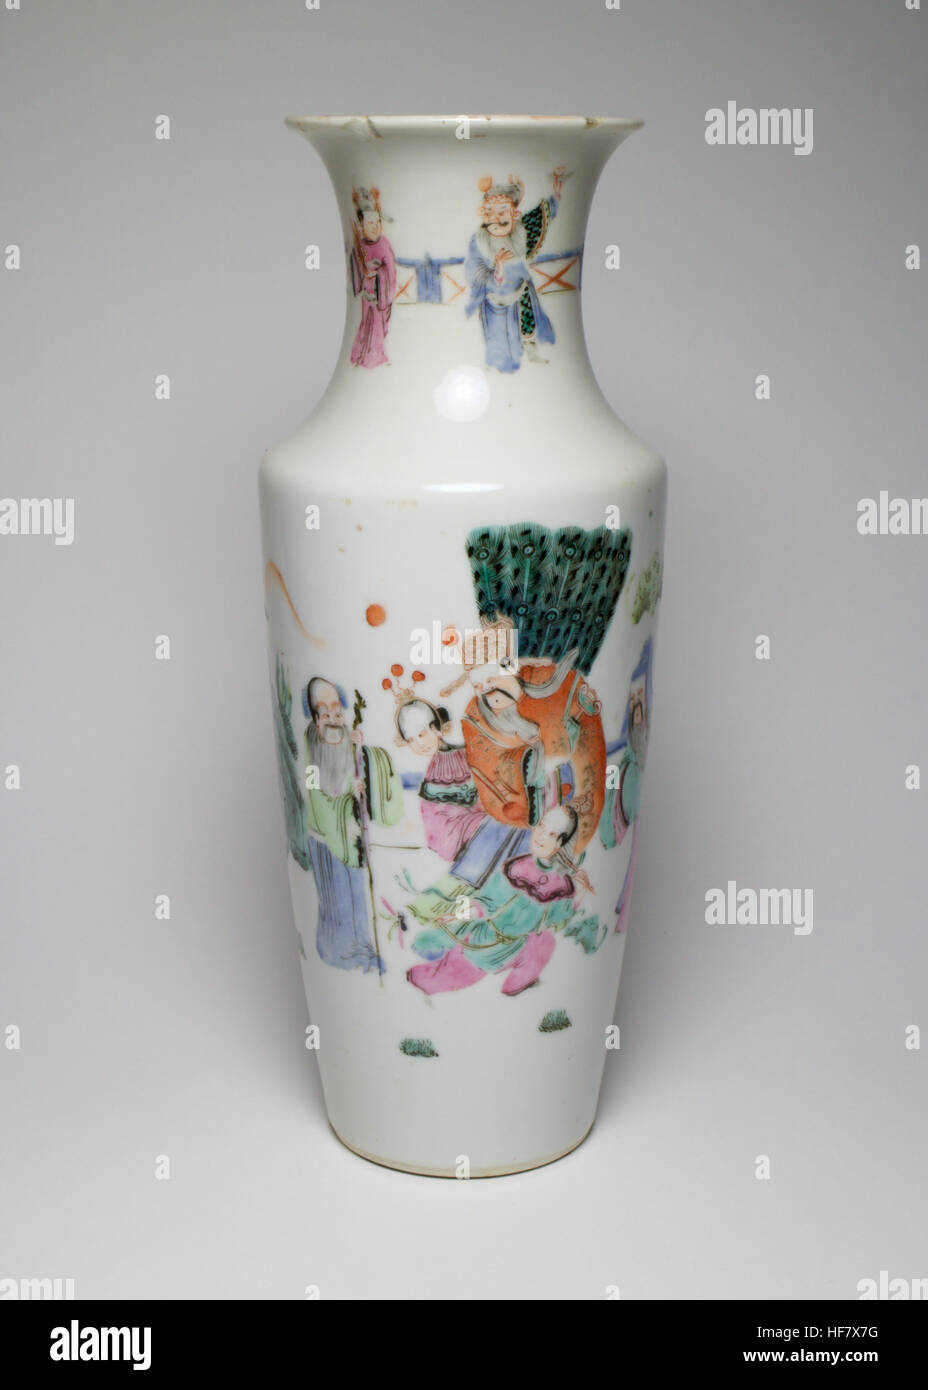 Antique chinese famille rose porcelain vase painted with figures antique chinese famille rose porcelain vase painted with figures within a garden and with mountains in the background neck with further figures befor reviewsmspy